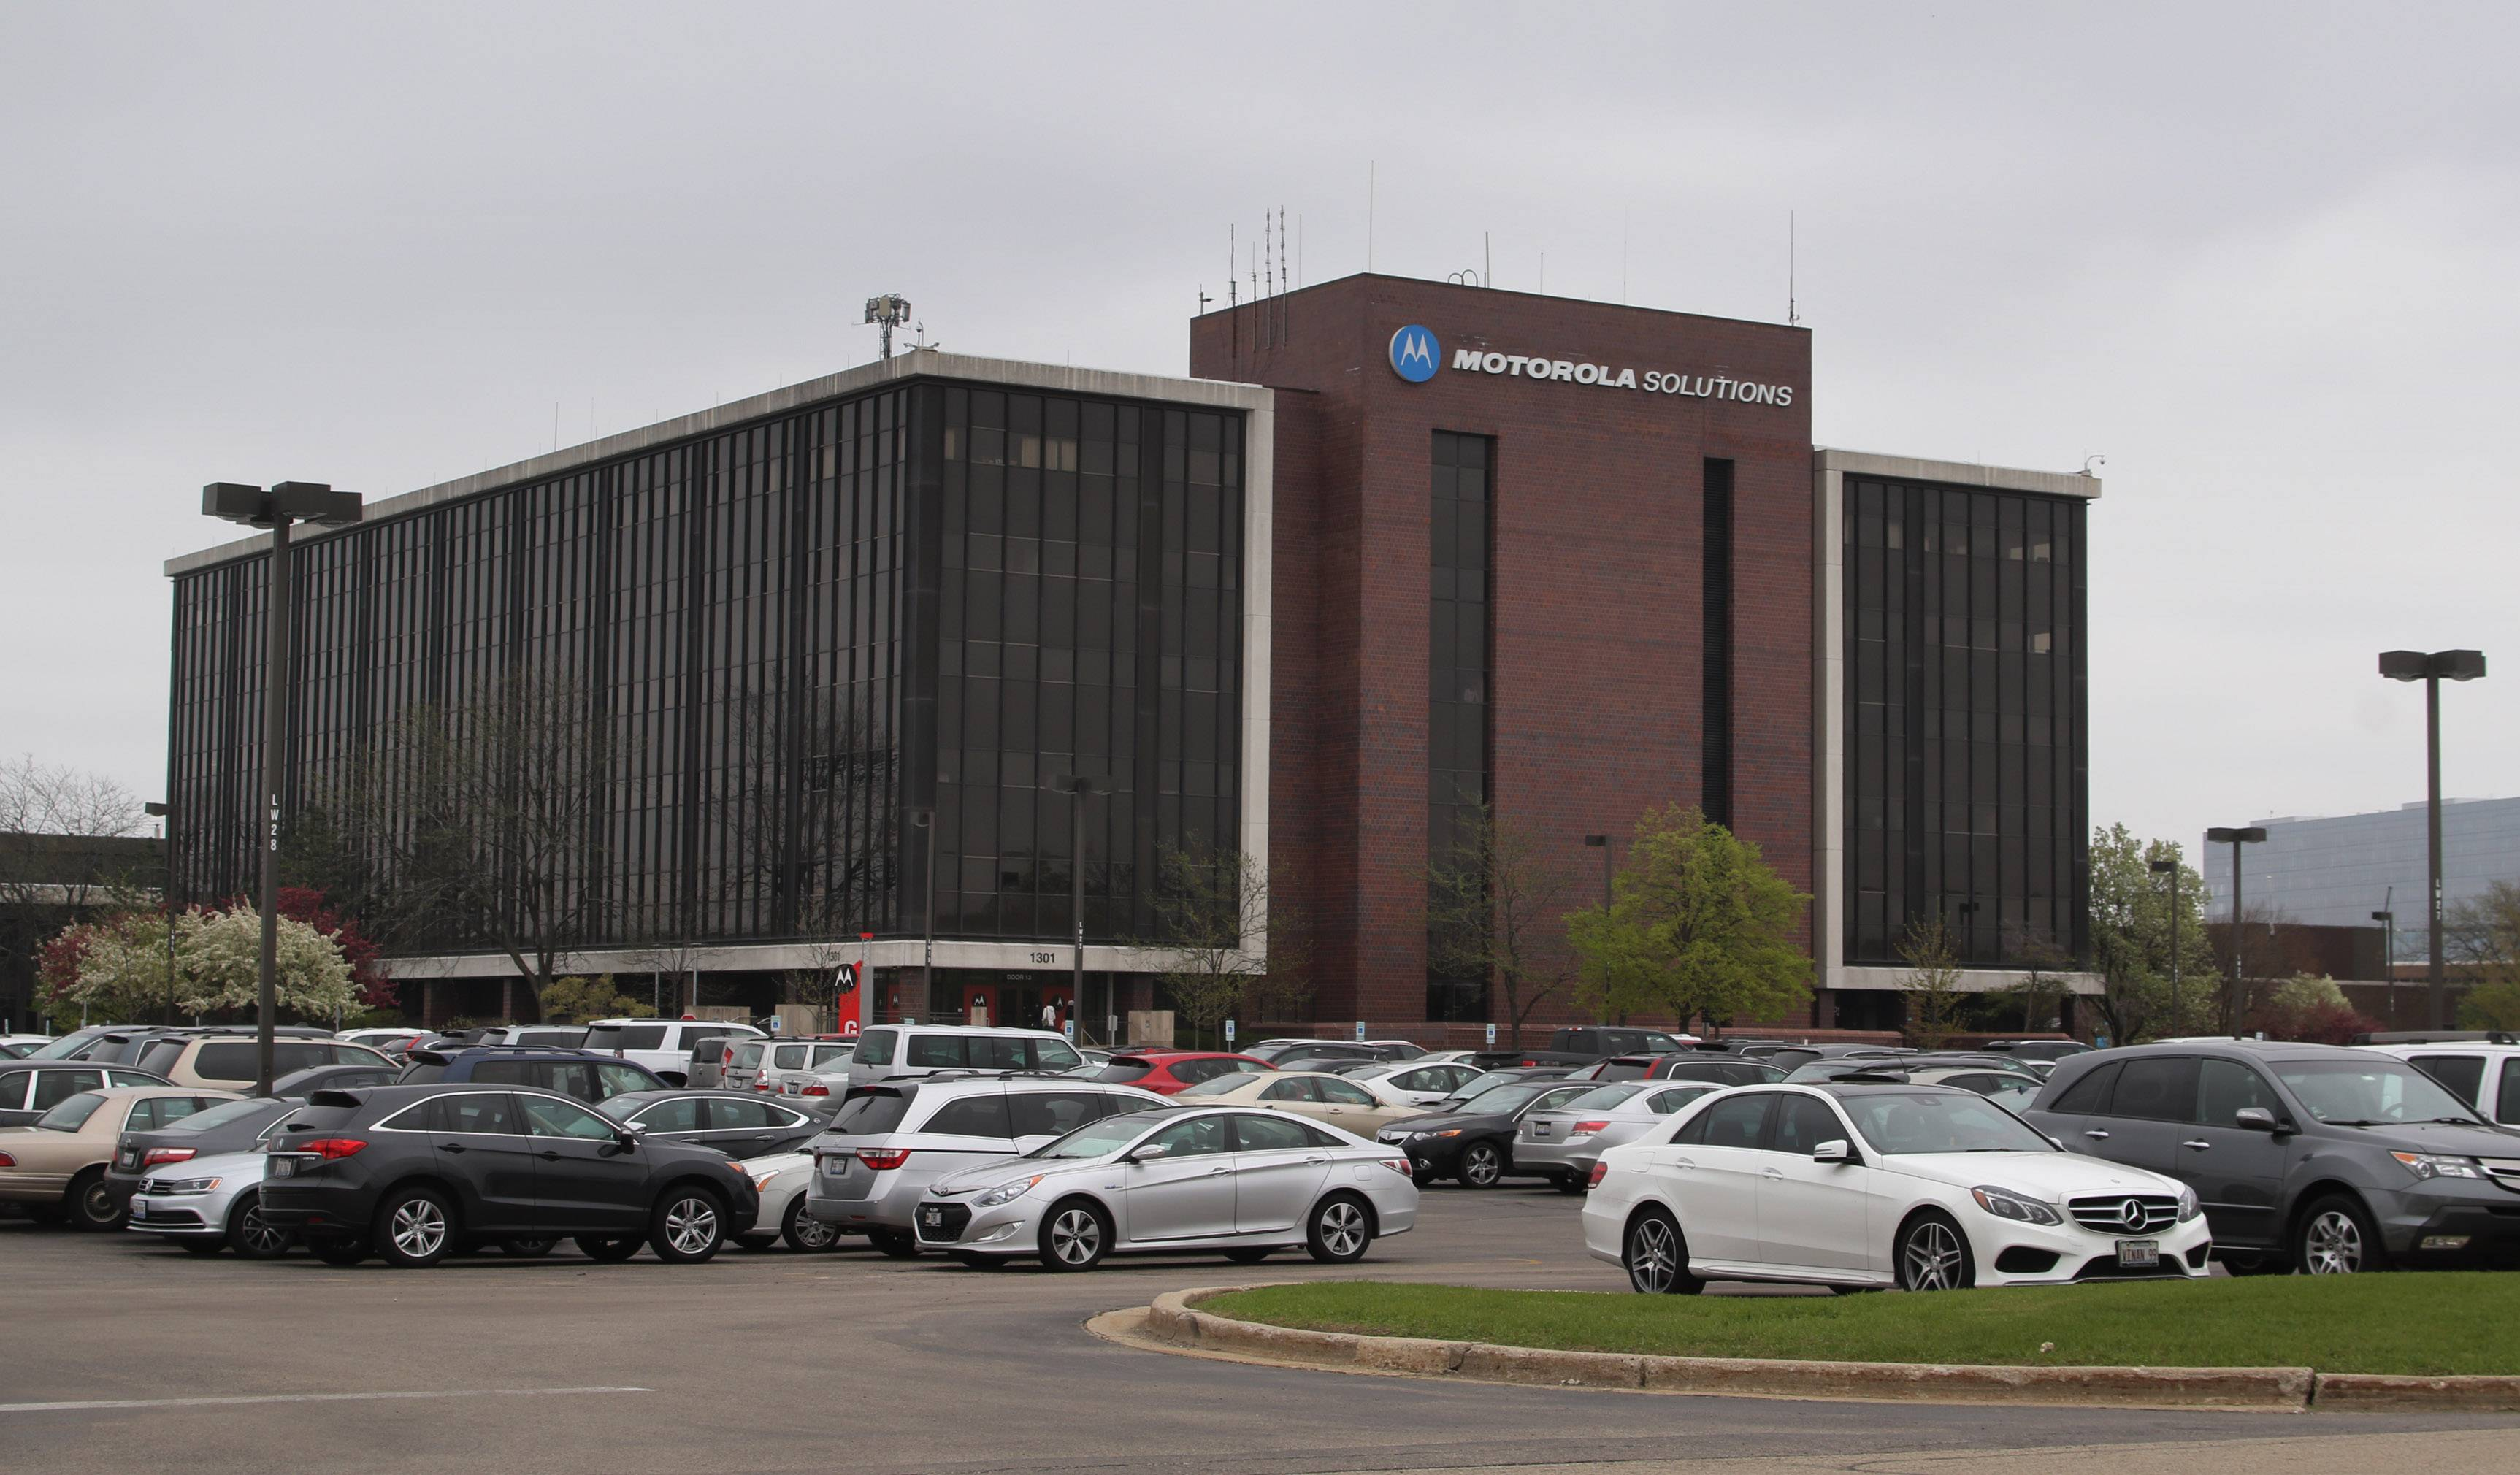 By mid-September, about 800 Motorola Solutions employees will have moved from the company's former global headquarters in Schaumburg to a headquarters in Chicago's West Loop.